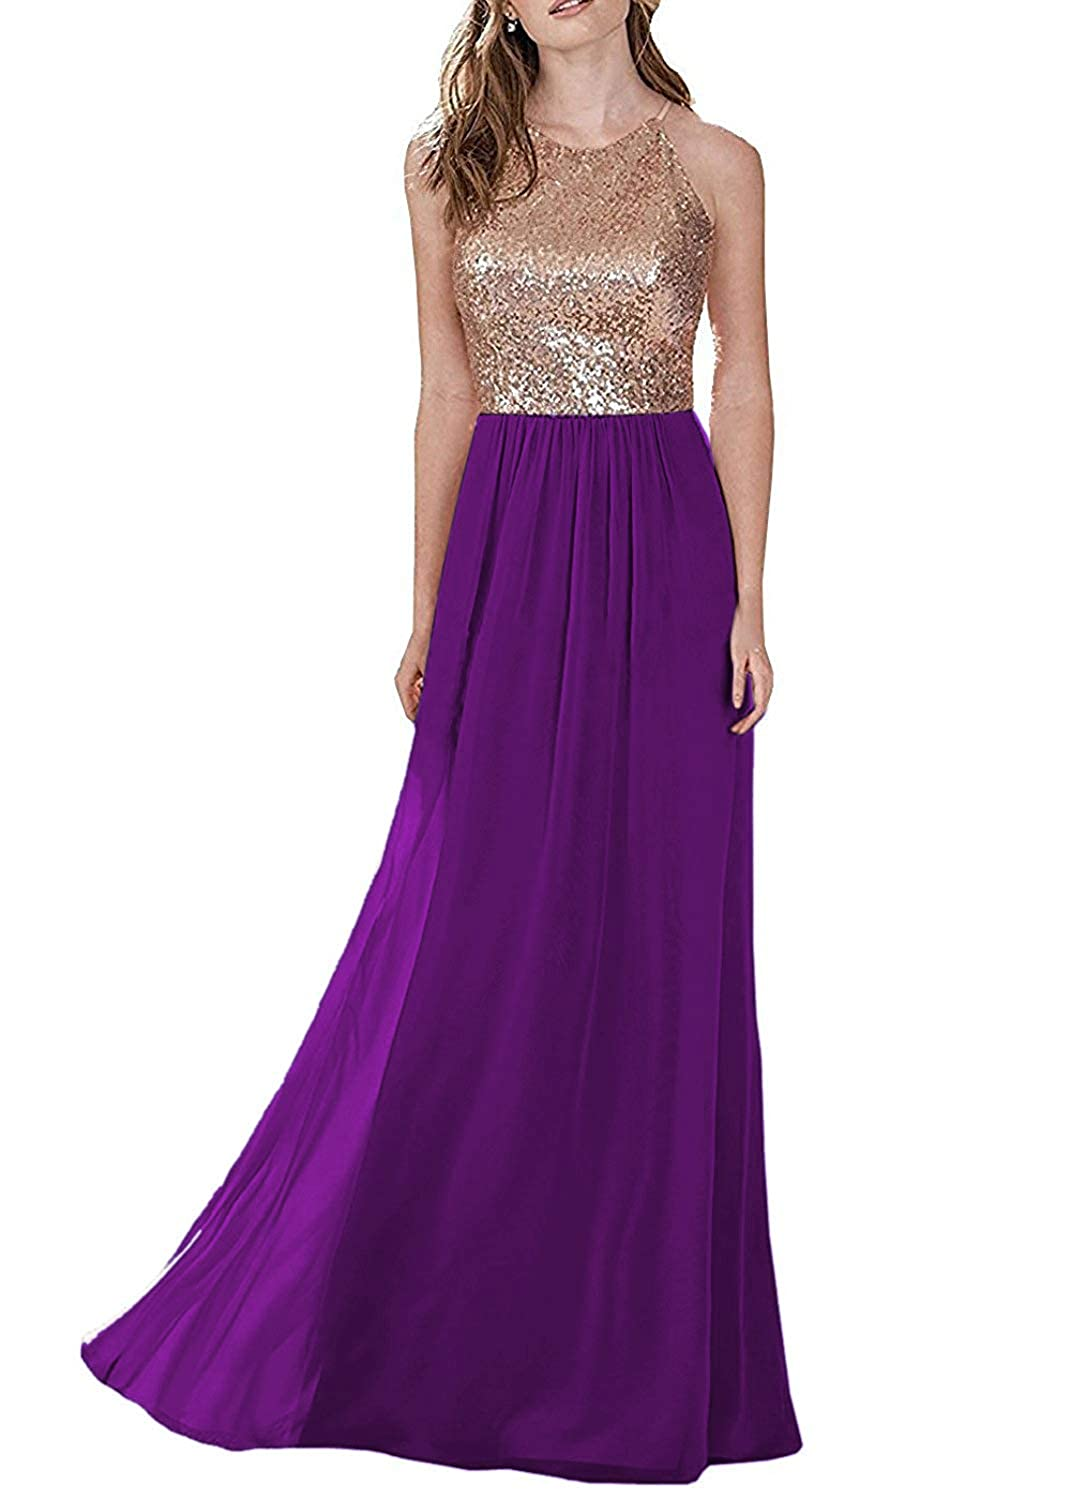 Purple LL Bridal Top Sequins pink gold Bridesmaid Dress Long Prom Party Dresses Evening